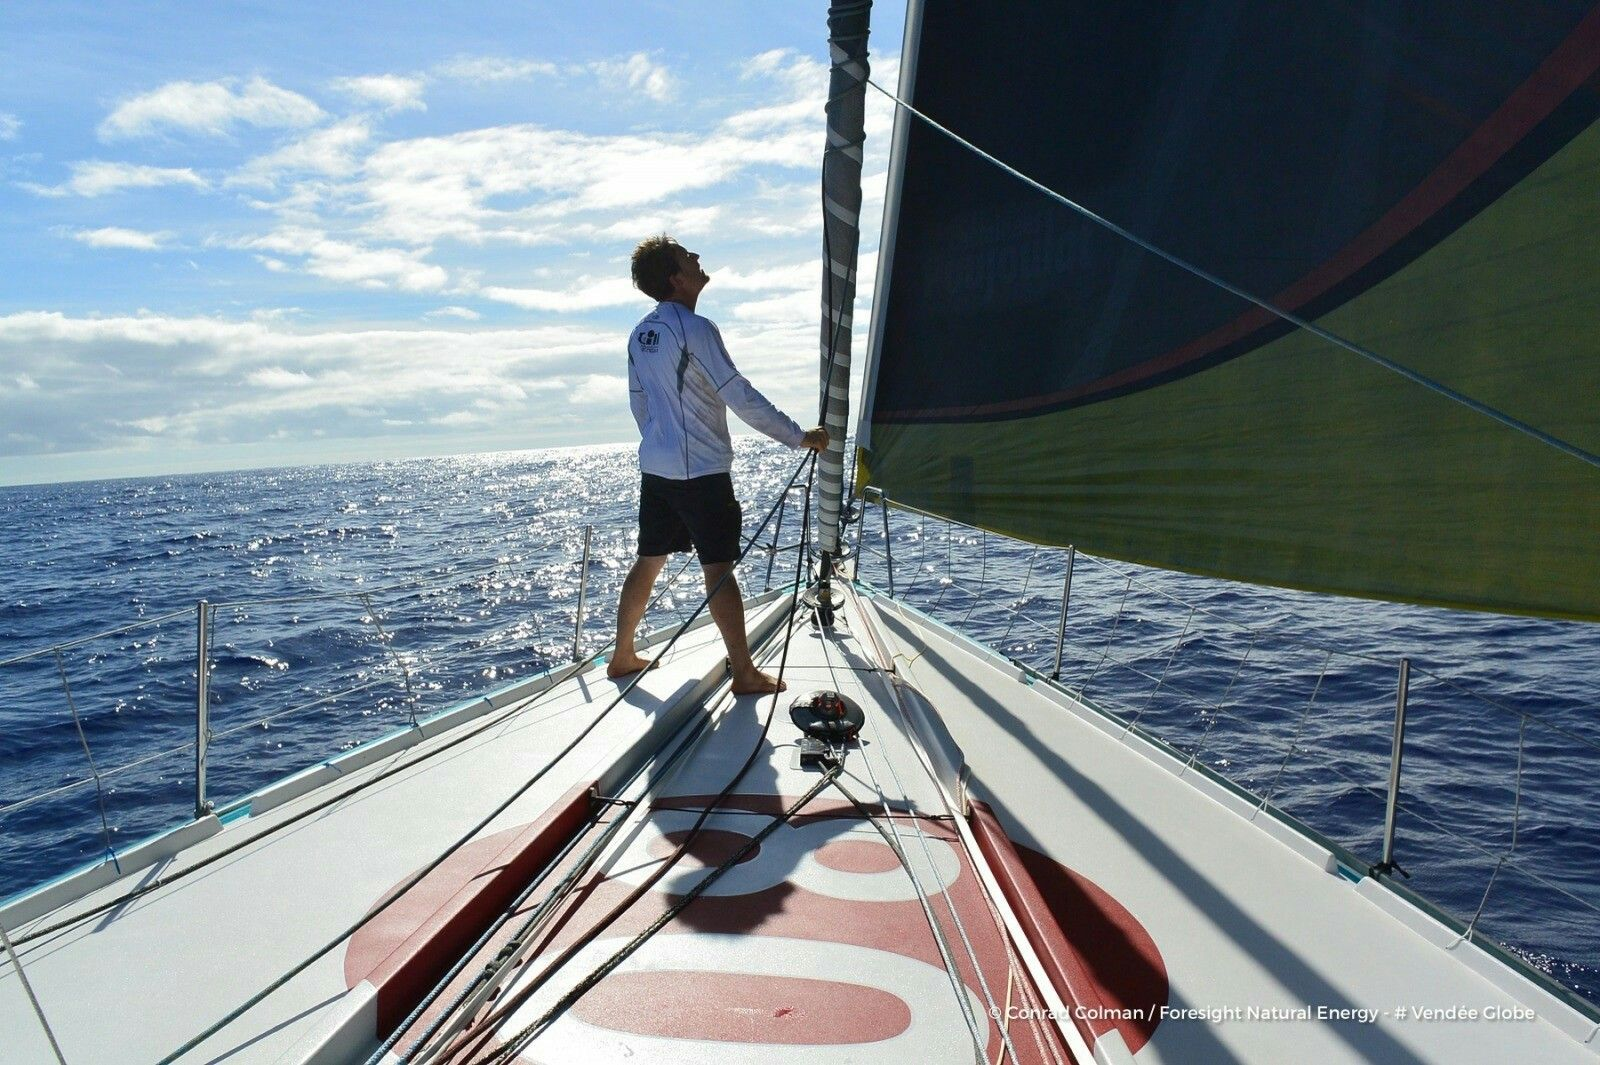 Photo sent from the boat Foresight Natural Energy, on November 22nd, 2016 - Photo Conrad ColmanPhoto envoyée depuis le bateau Foresight Natural Energy le 22 Novembre 2016